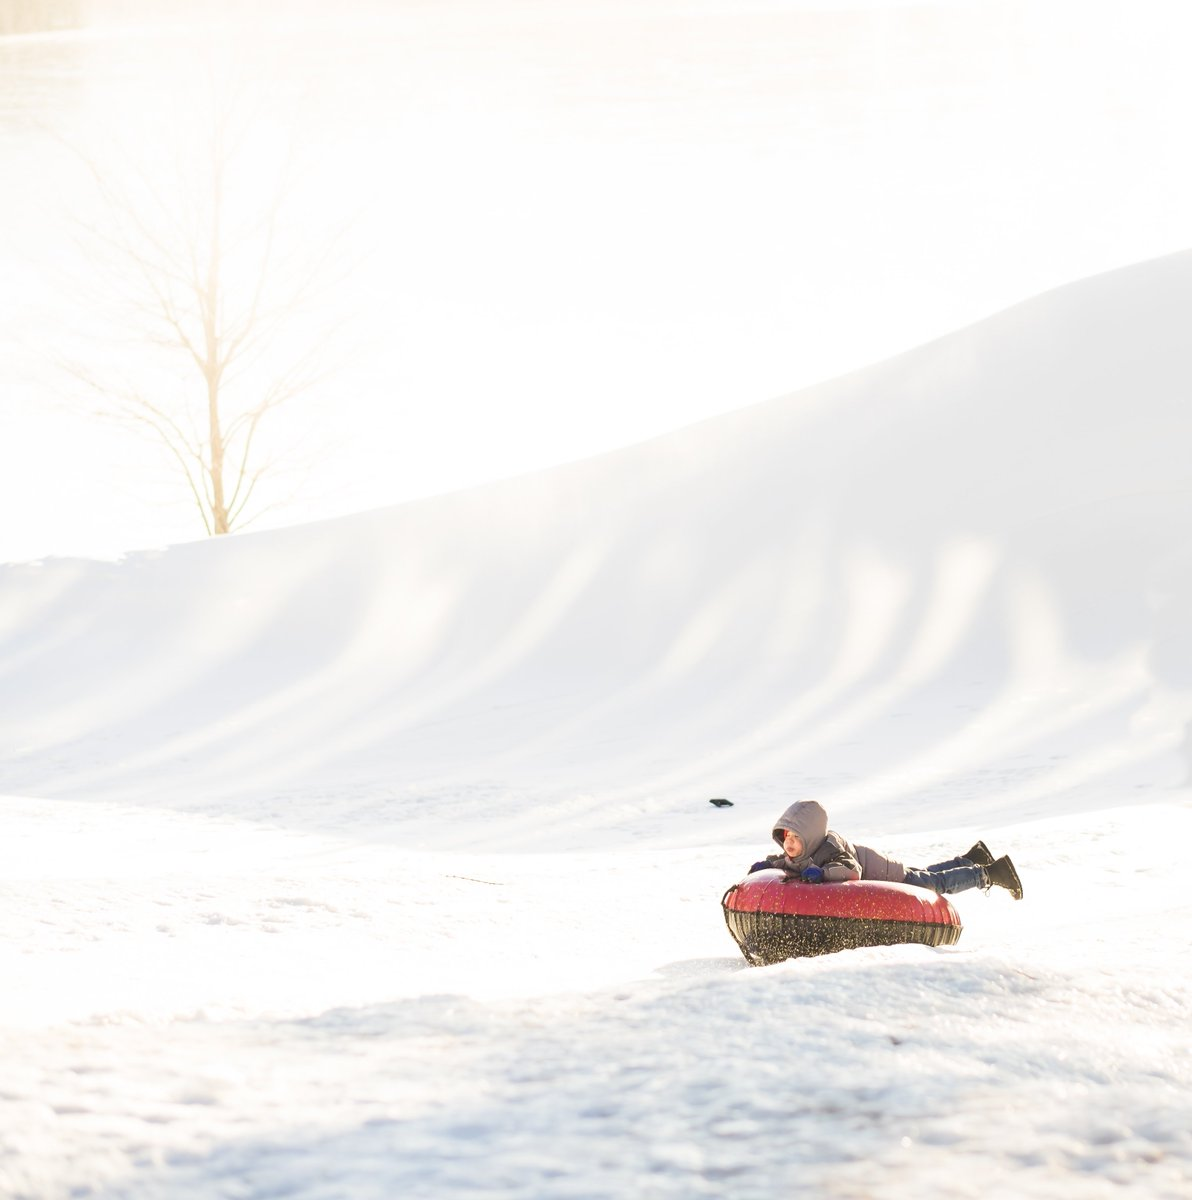 Keep on tubin'.  #poconomtns #familytravel #wintervacation https://t.co/hRnQS4mle0